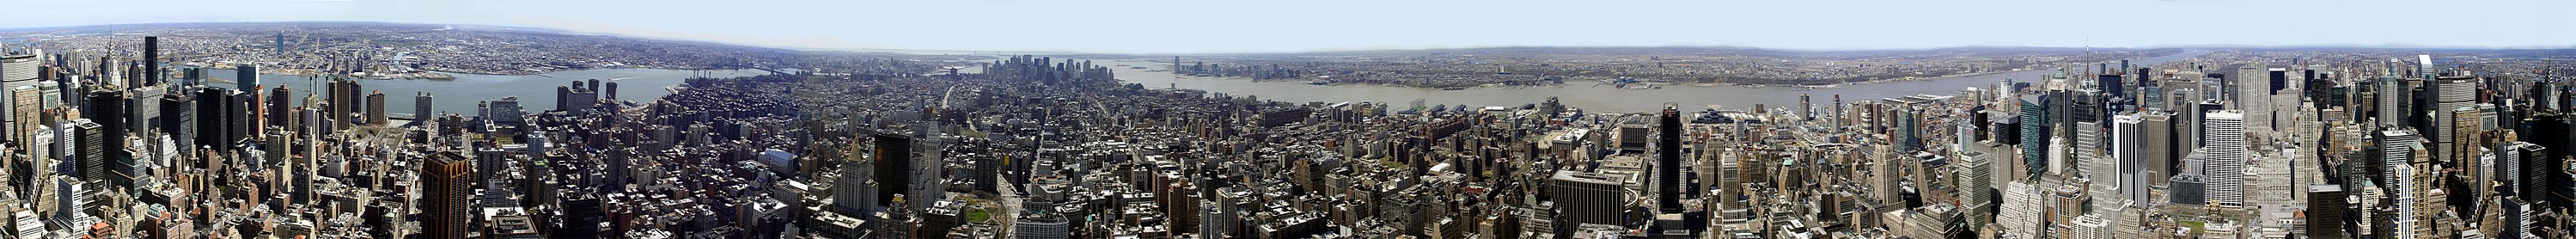 360°-Panorama, Manhattan vom Empire State Building bei Tag